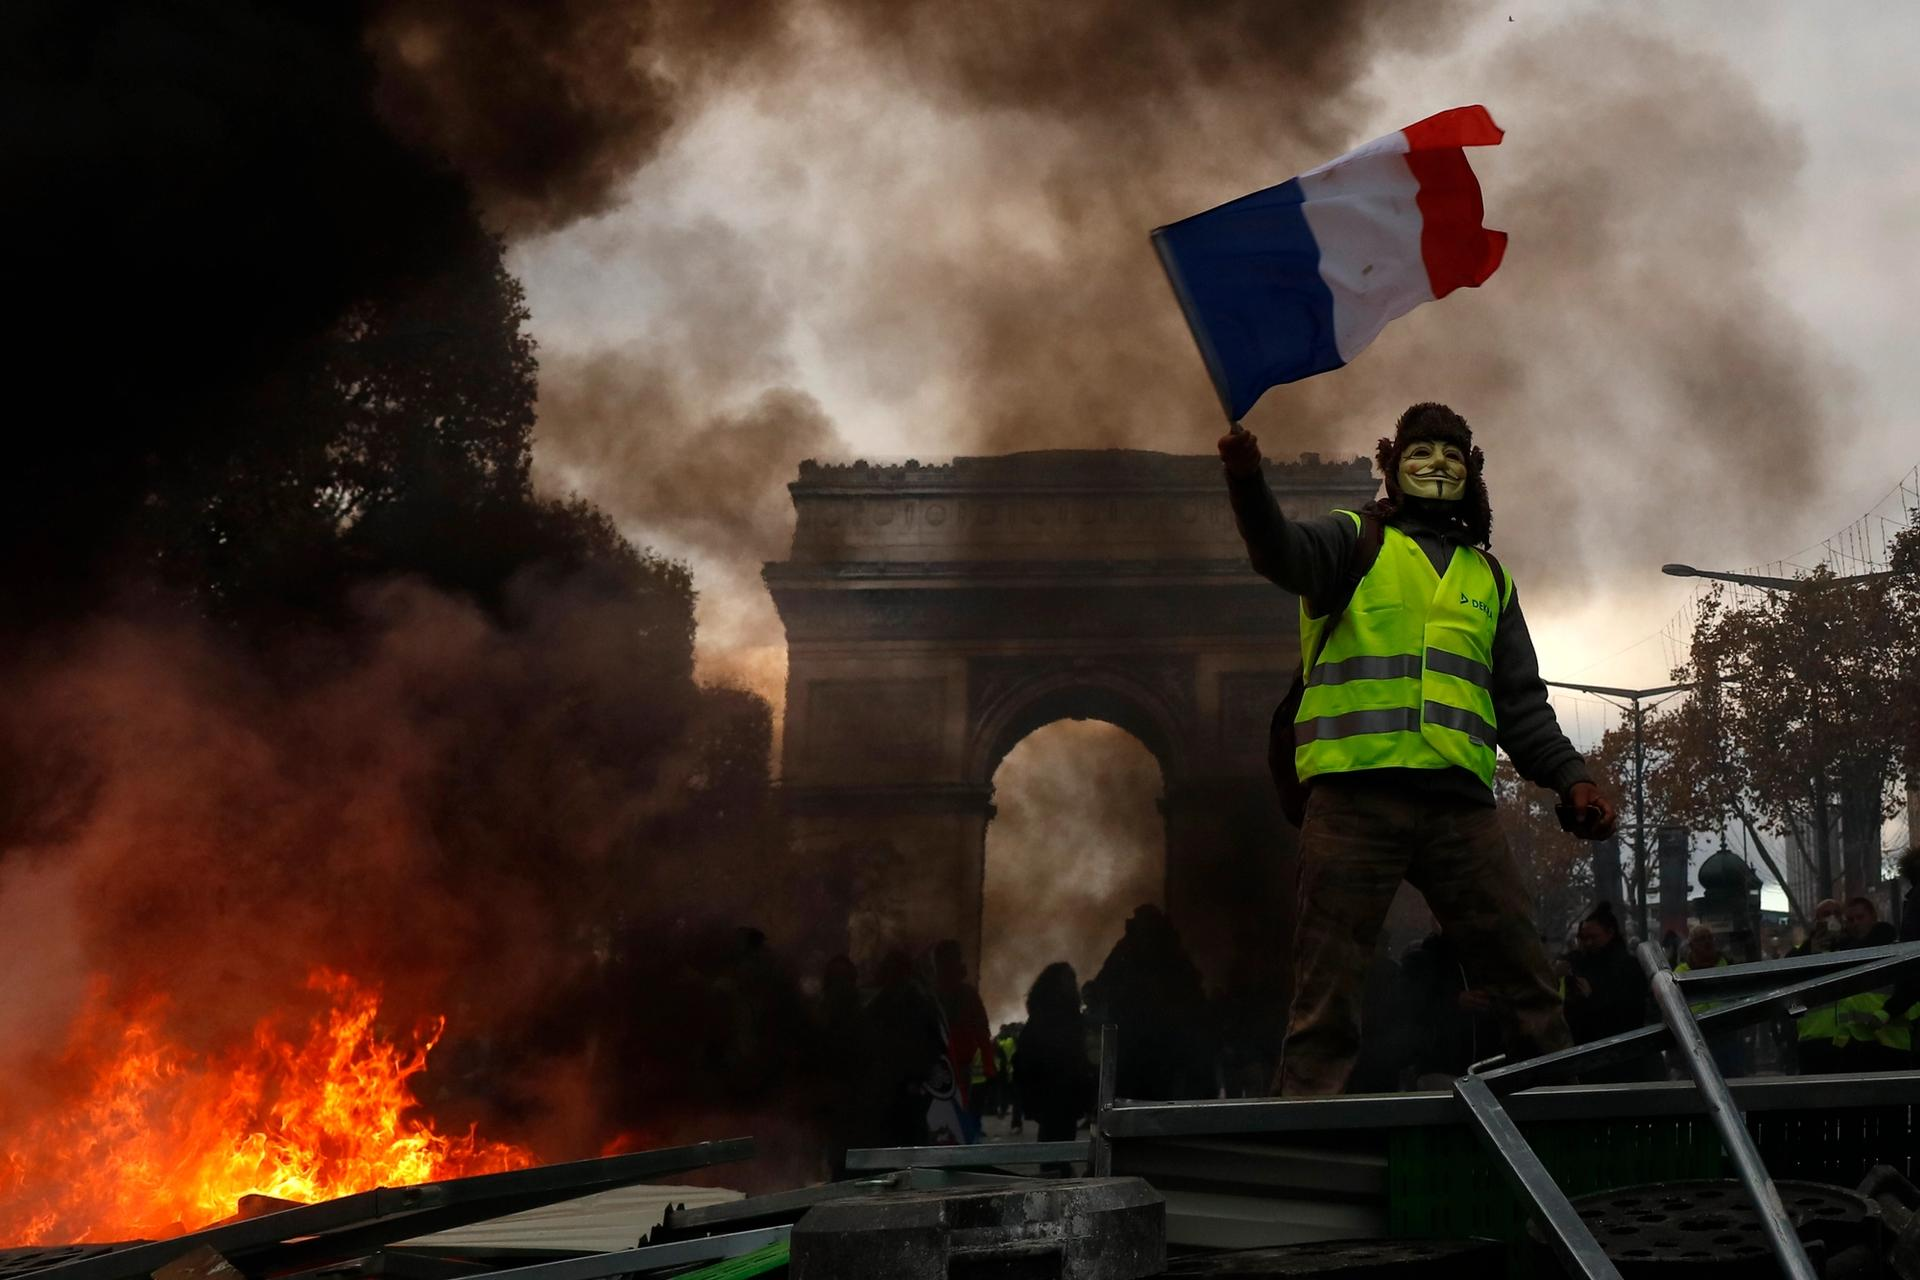 The Arc de Triomphe on the Champs-Elysées was graffitied by rioters in Paris Photo by Mehdi Taamallah/NurPhoto via Getty Images